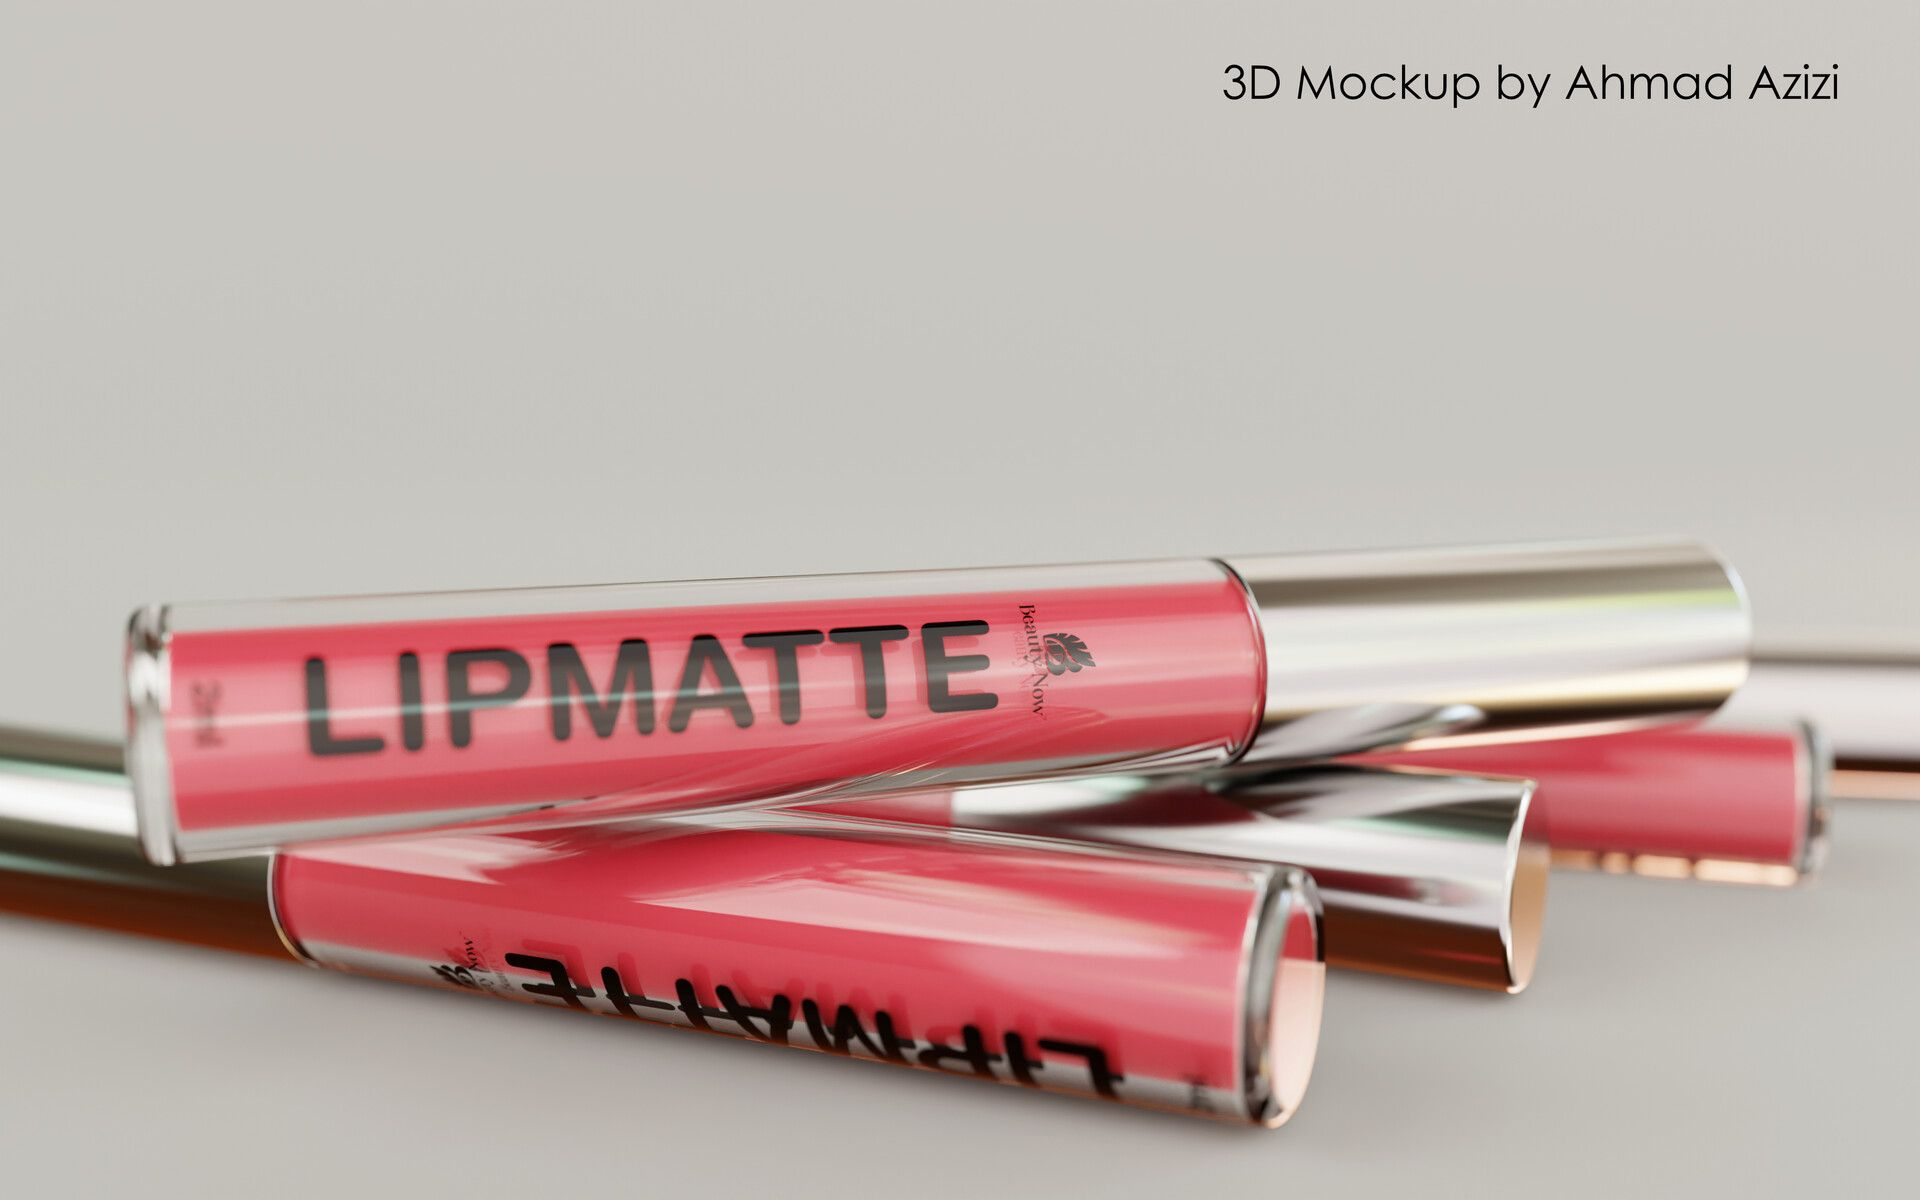 Lipmatte by Beauty Now by Ahmad AziziA 3D Mockup that i made for this product